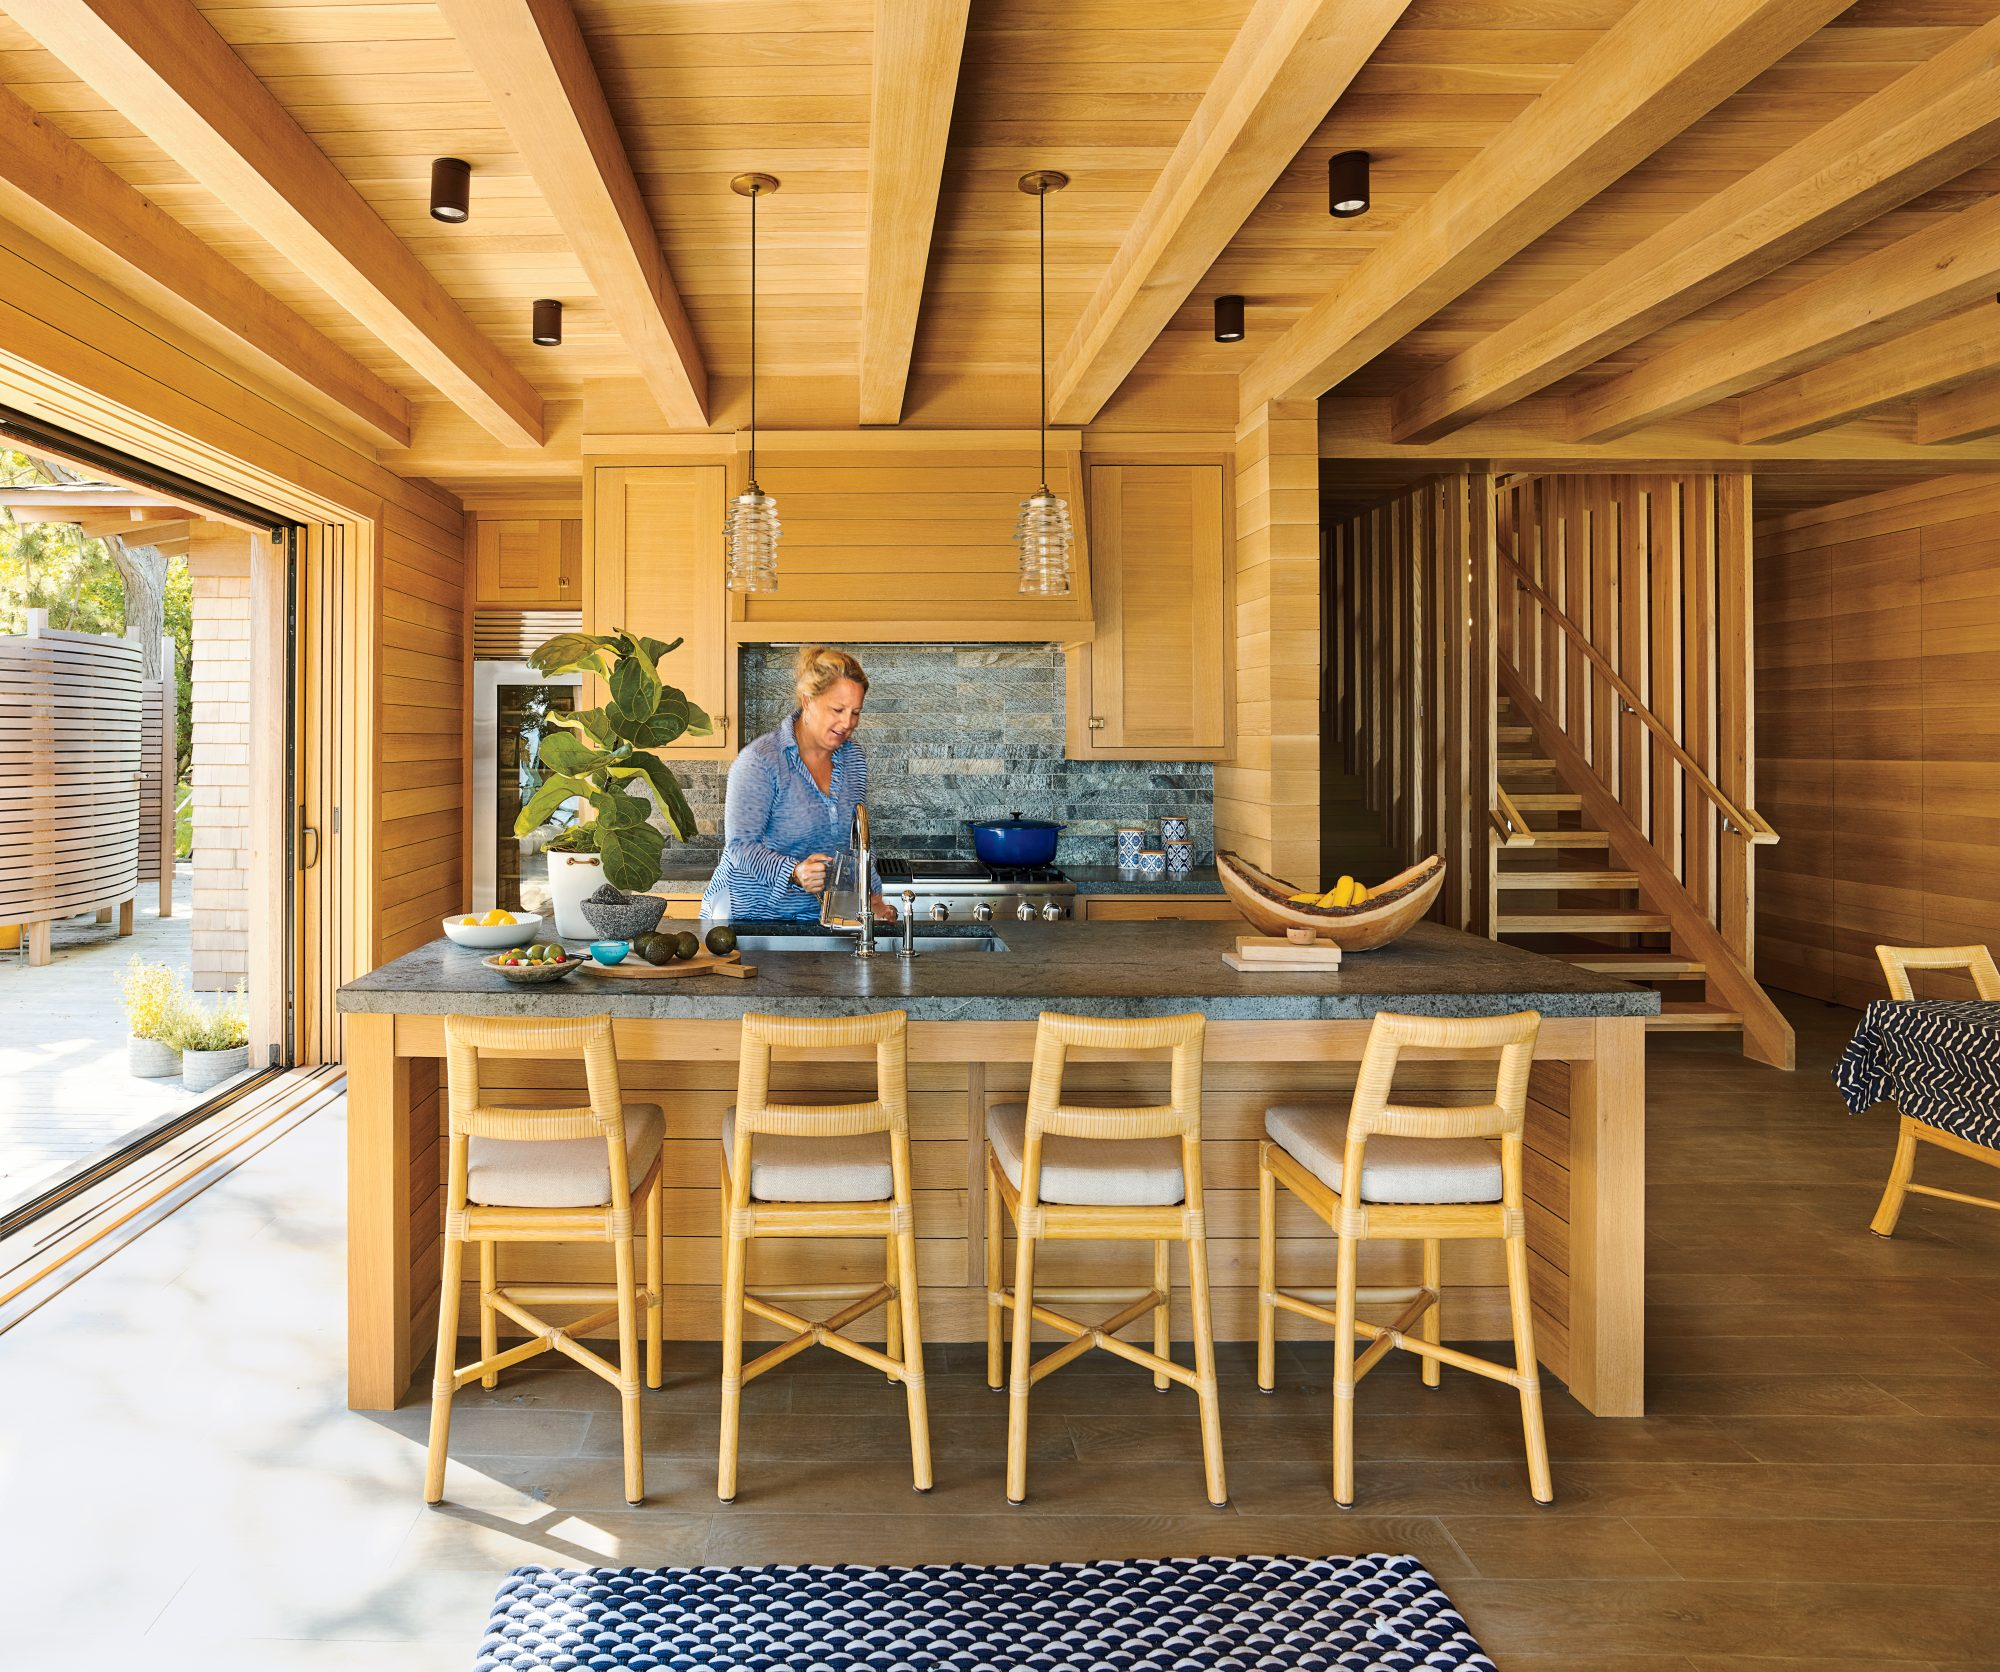 Kitchen with organic appeal